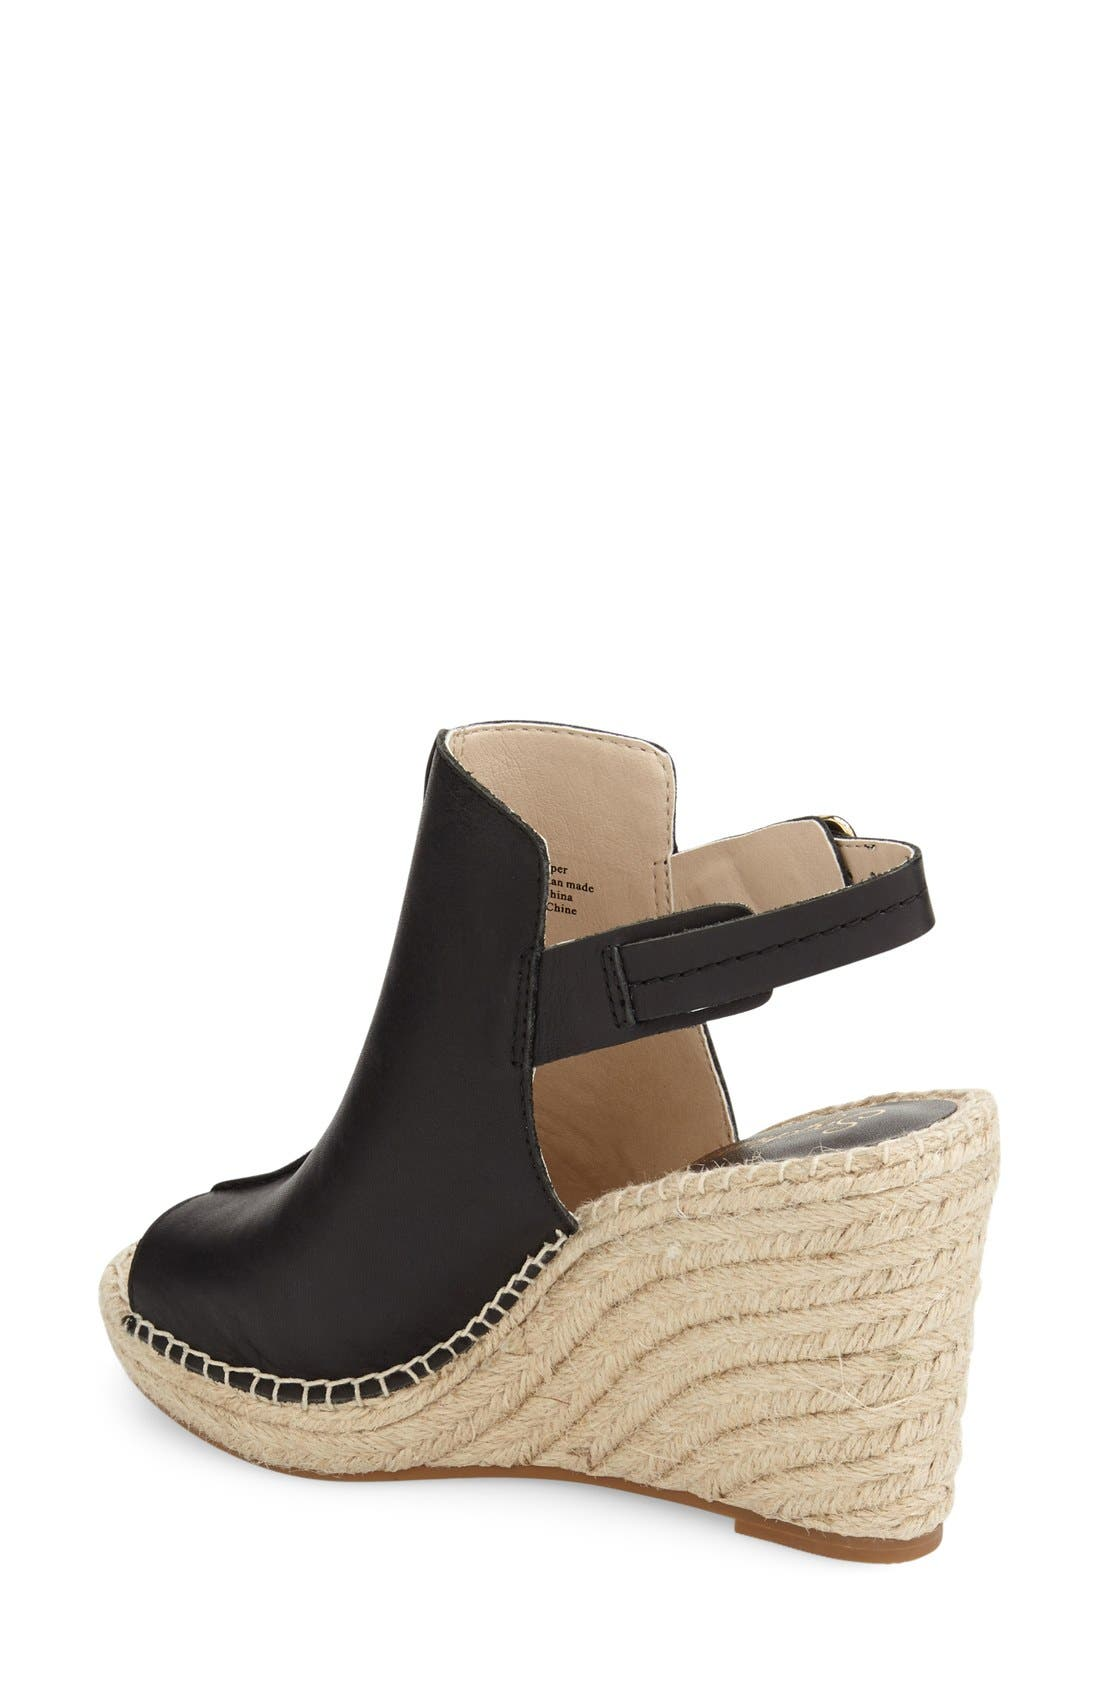 'Charismatic' Espadrille Wedge,                             Alternate thumbnail 6, color,                             001